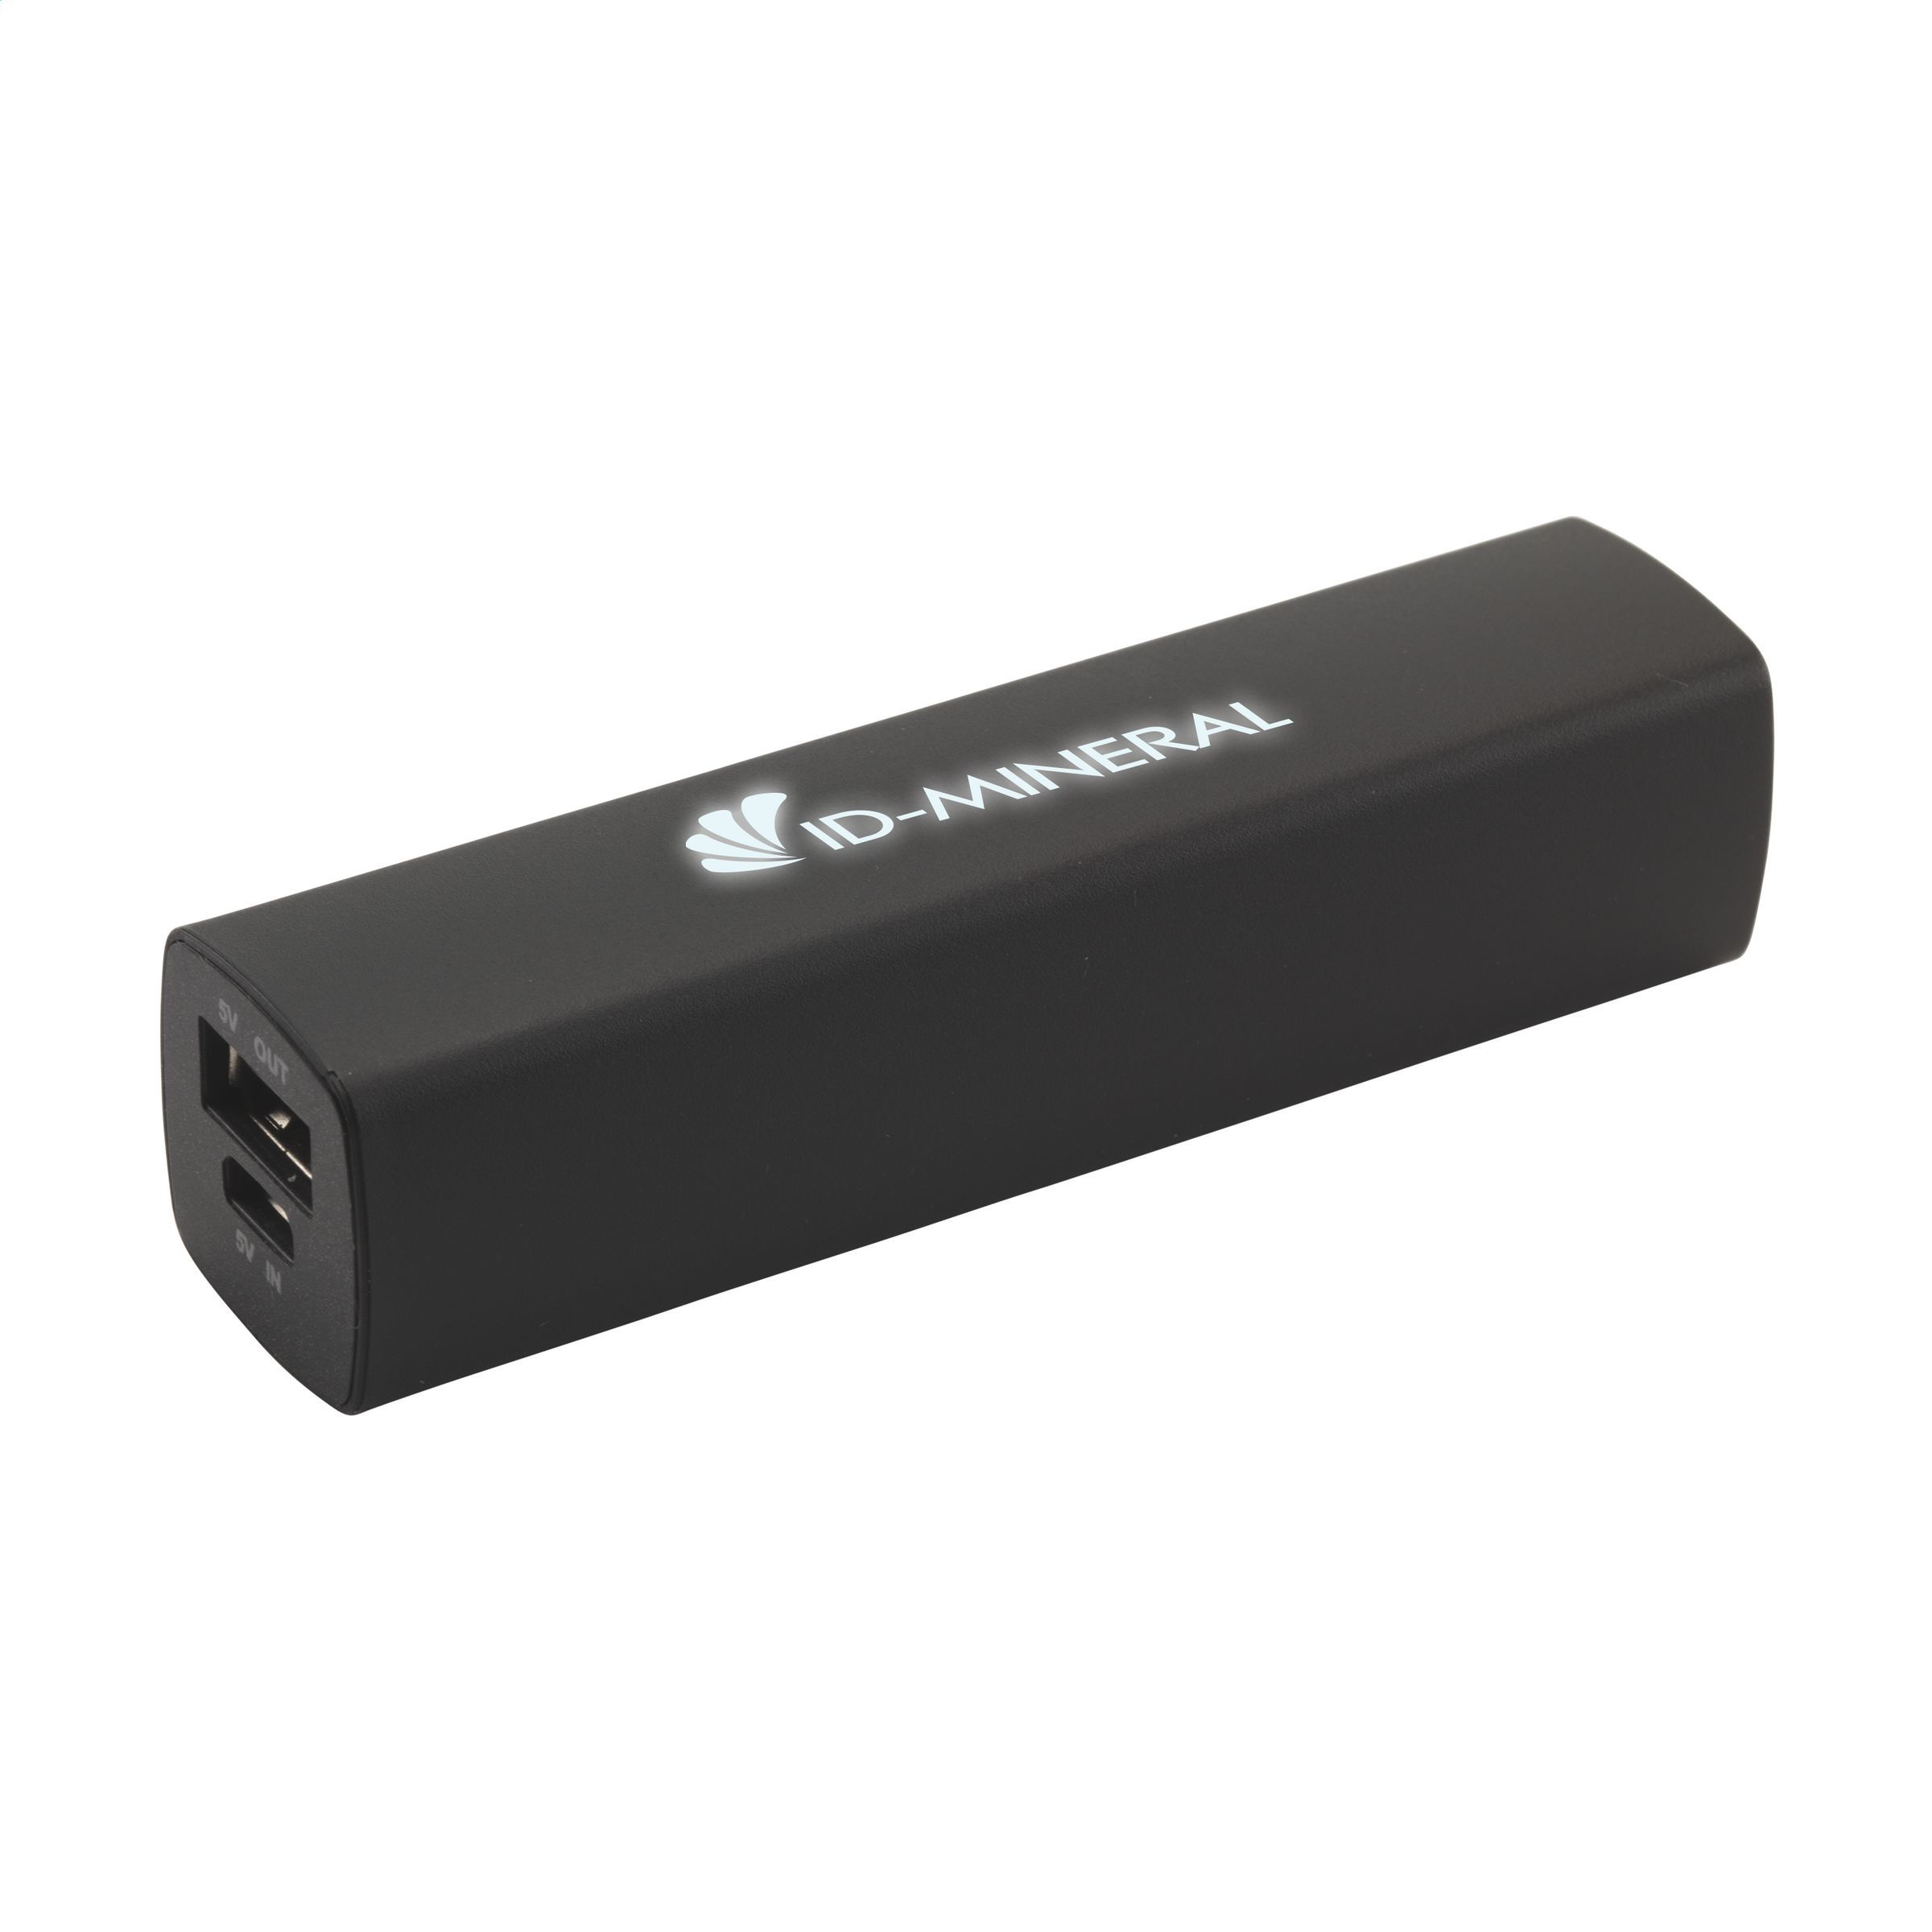 LogoBoost 2500 Powerbank powercharger